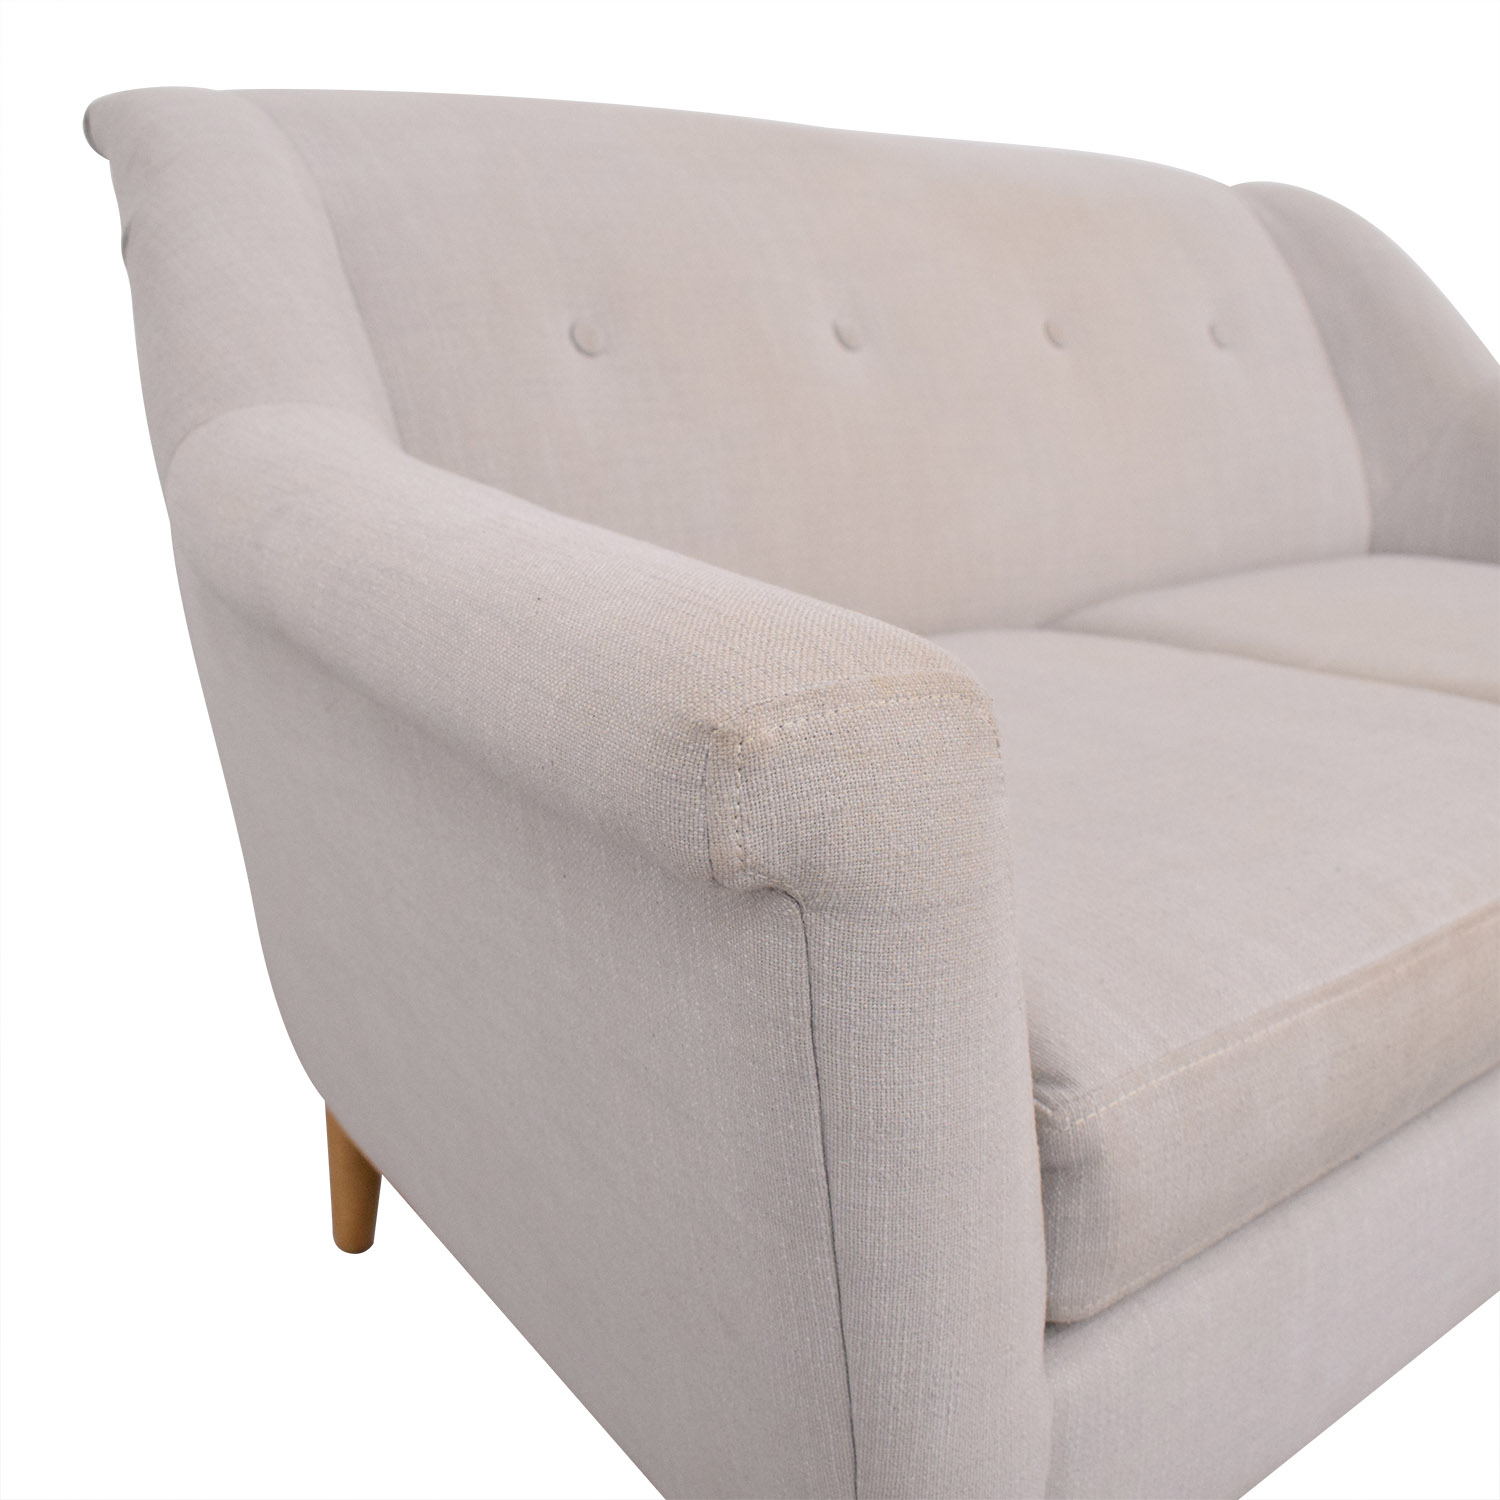 West Elm West Elm Finn Loveseat nj